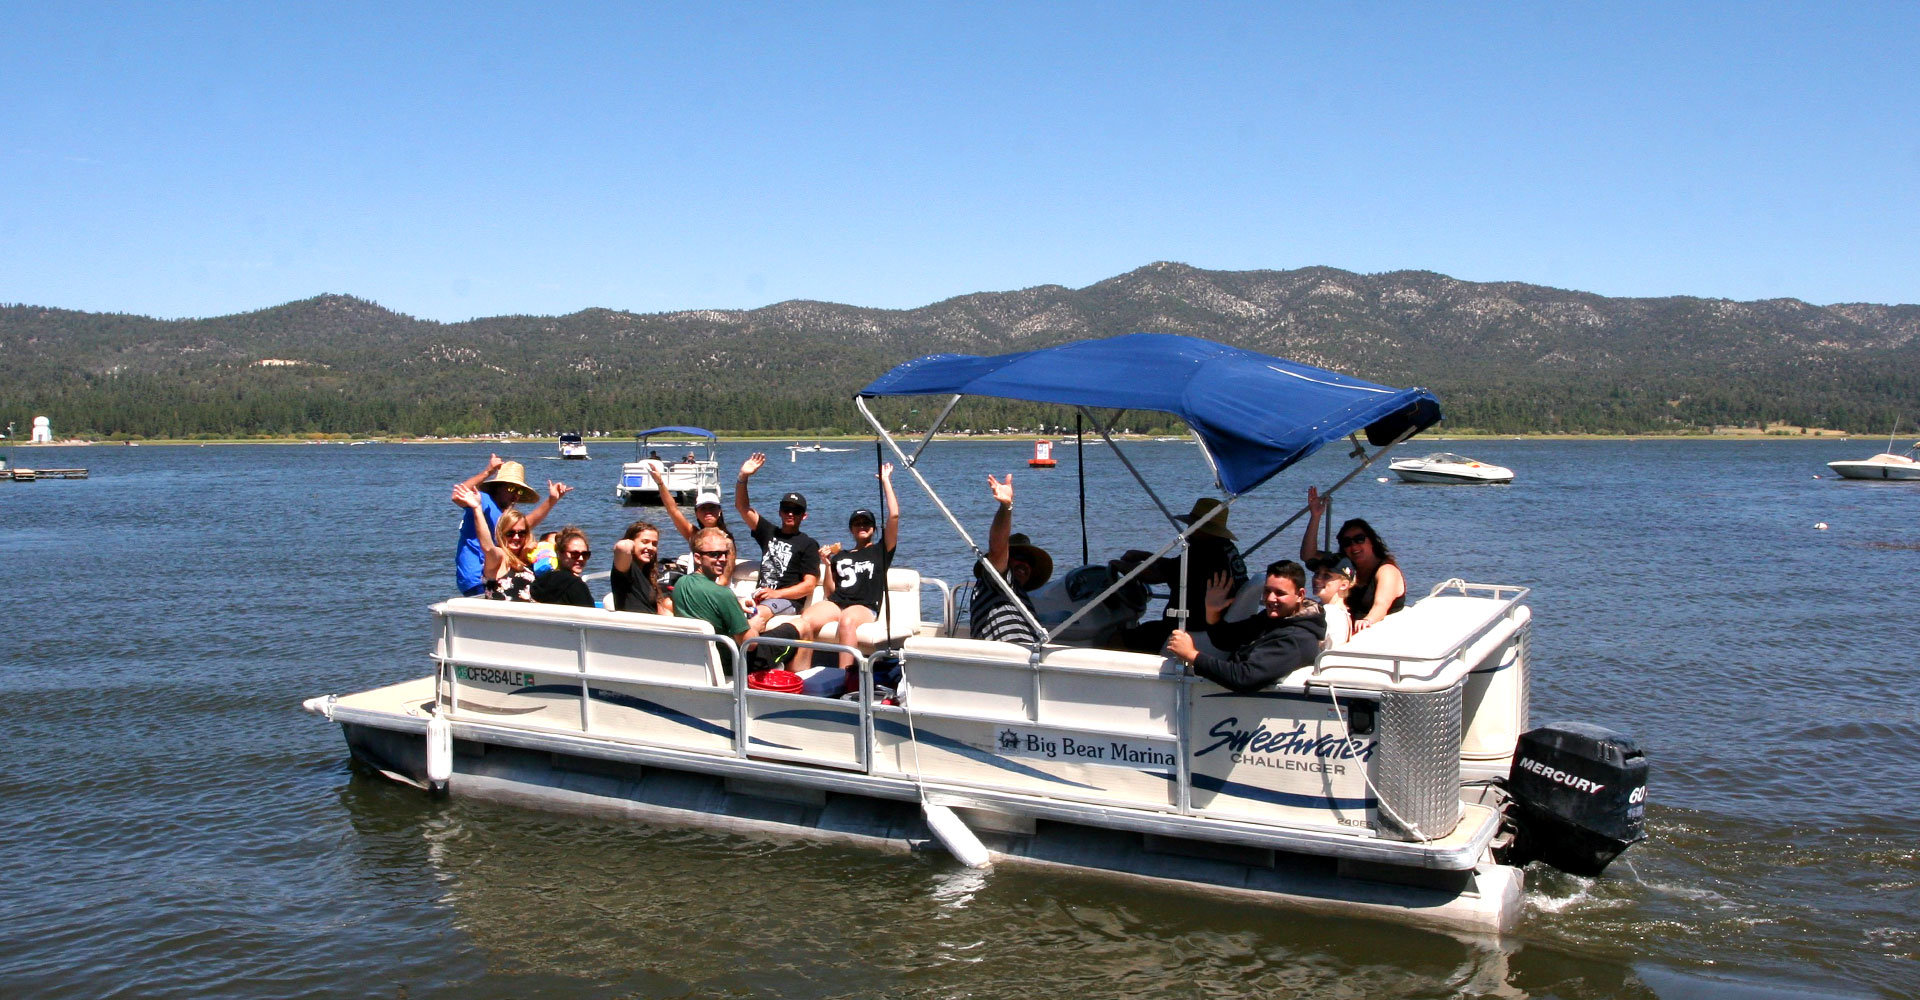 Big bear marina boat rentals for pontoon fishing for Lake fishing boats